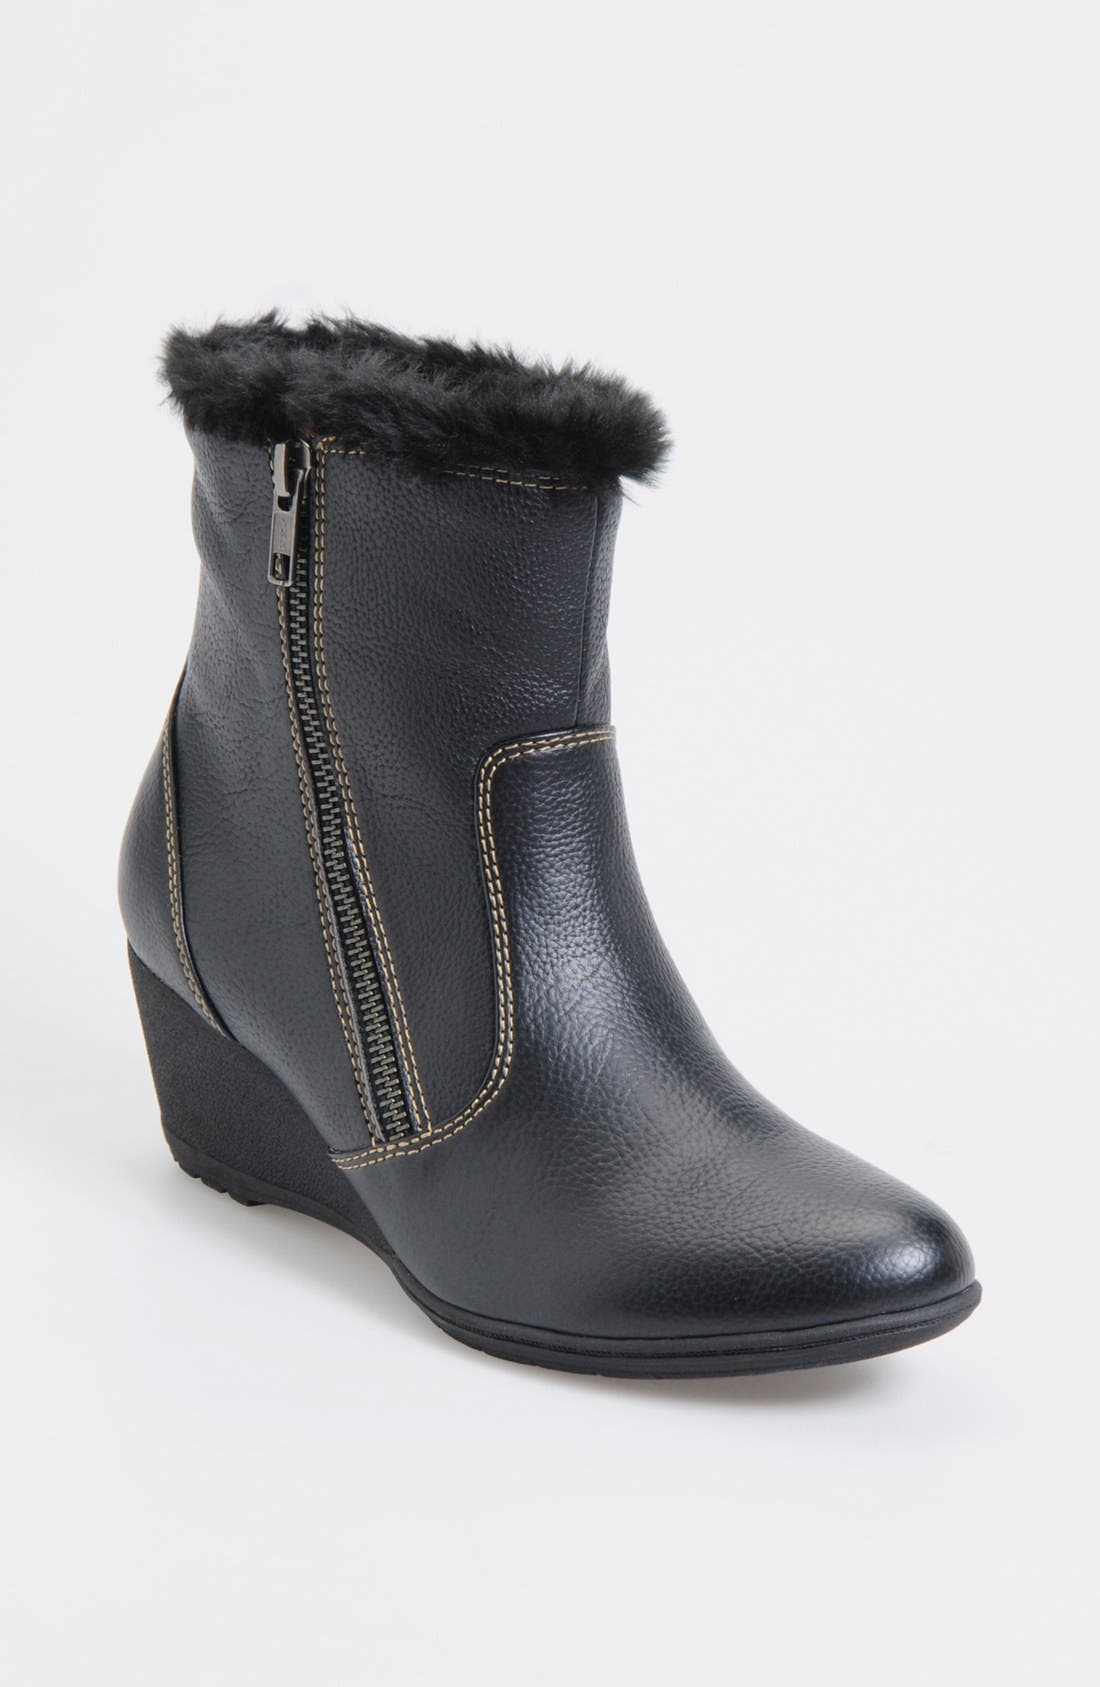 Alternate Image 1 Selected - Softspots 'Odele' Boot